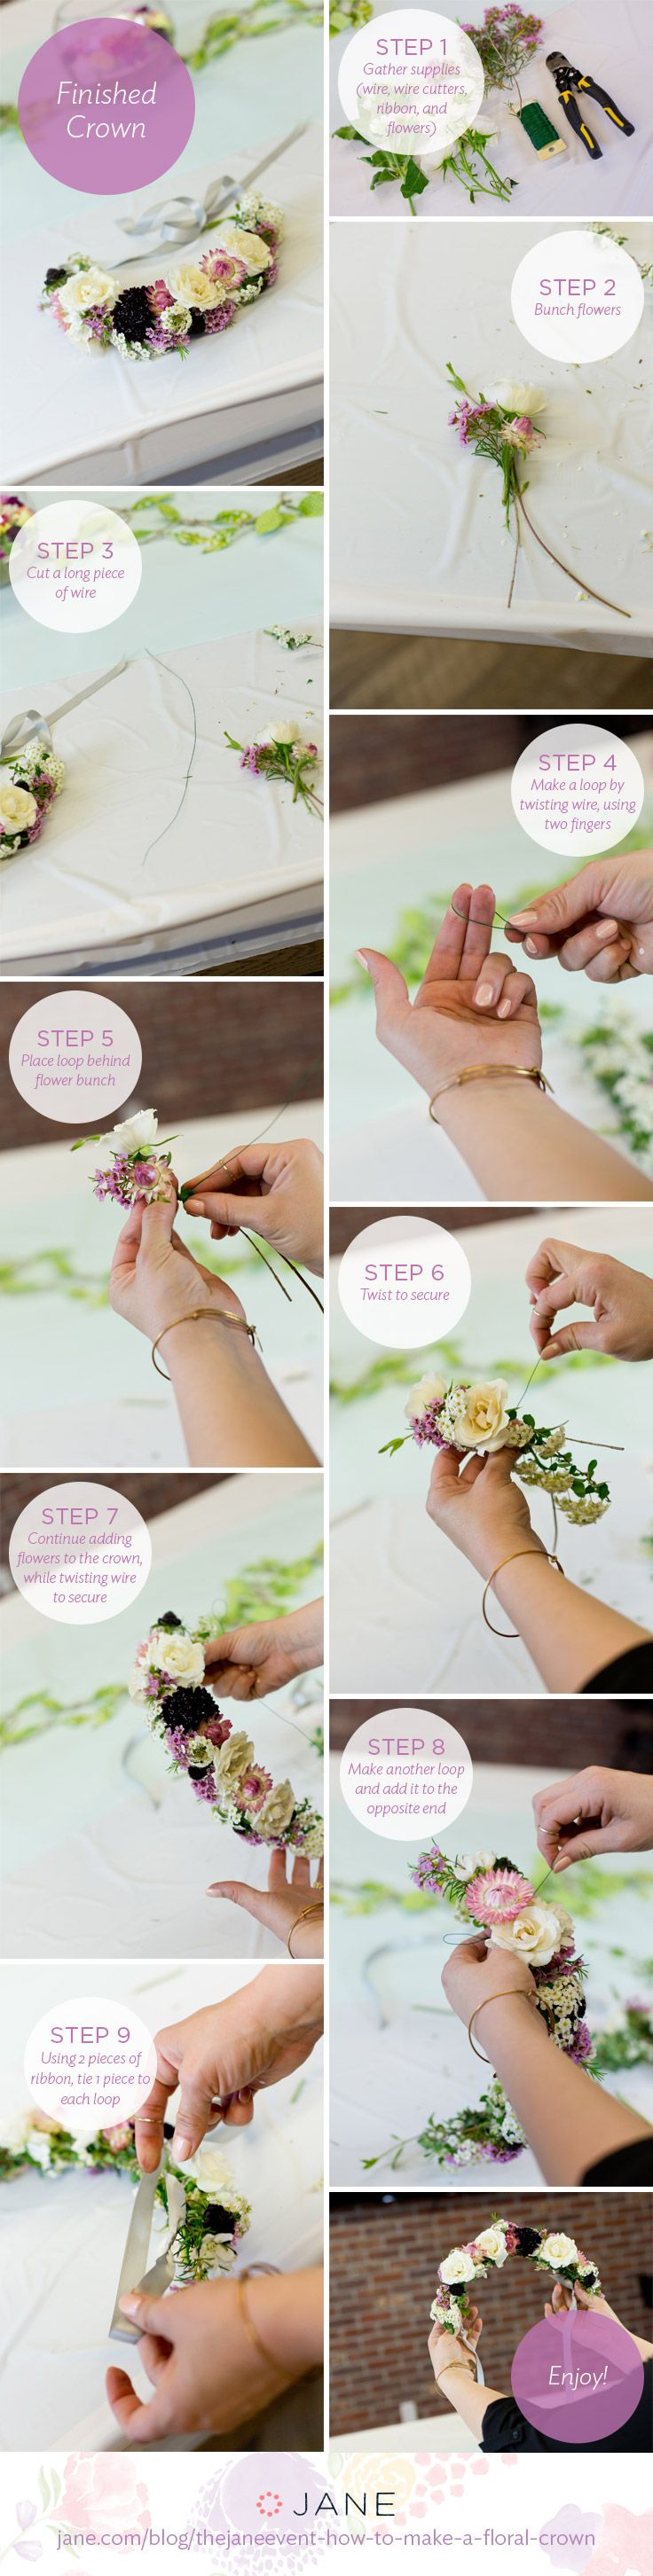 Jane.com - TheJaneEvent - How to Make a Floral Crown